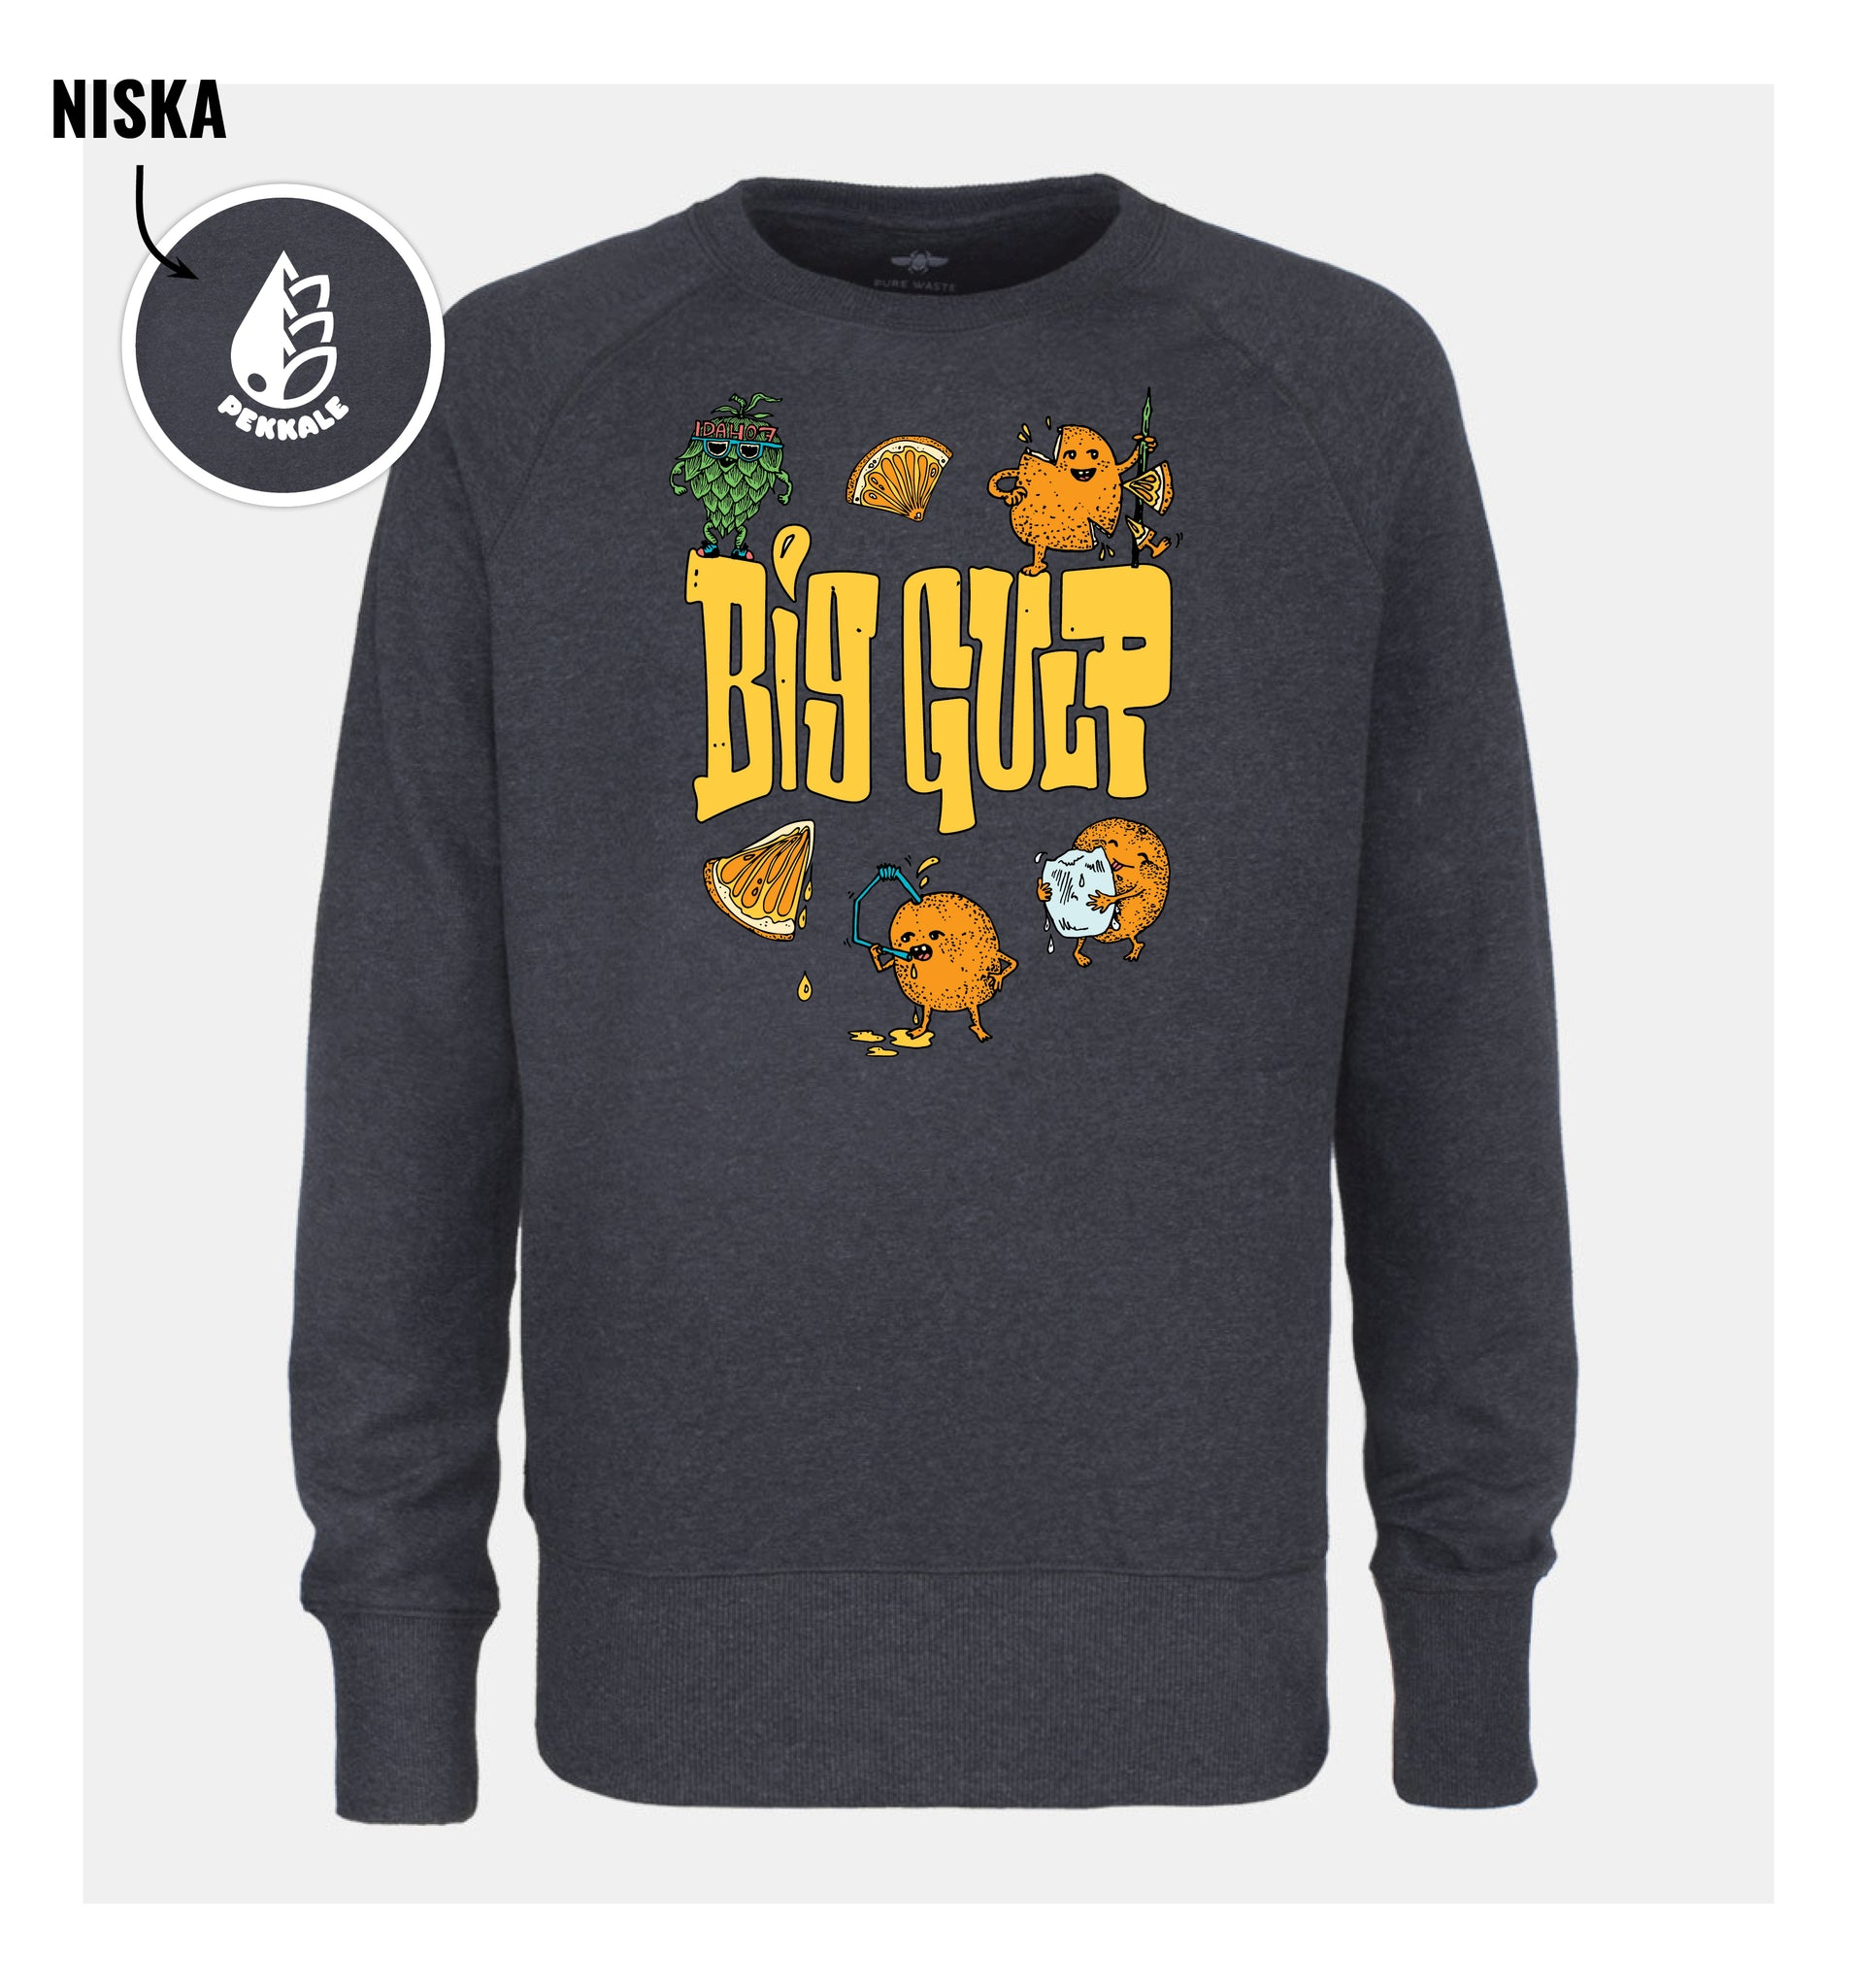 BIG GULP / Anthracite Sweatshirt / Unisex